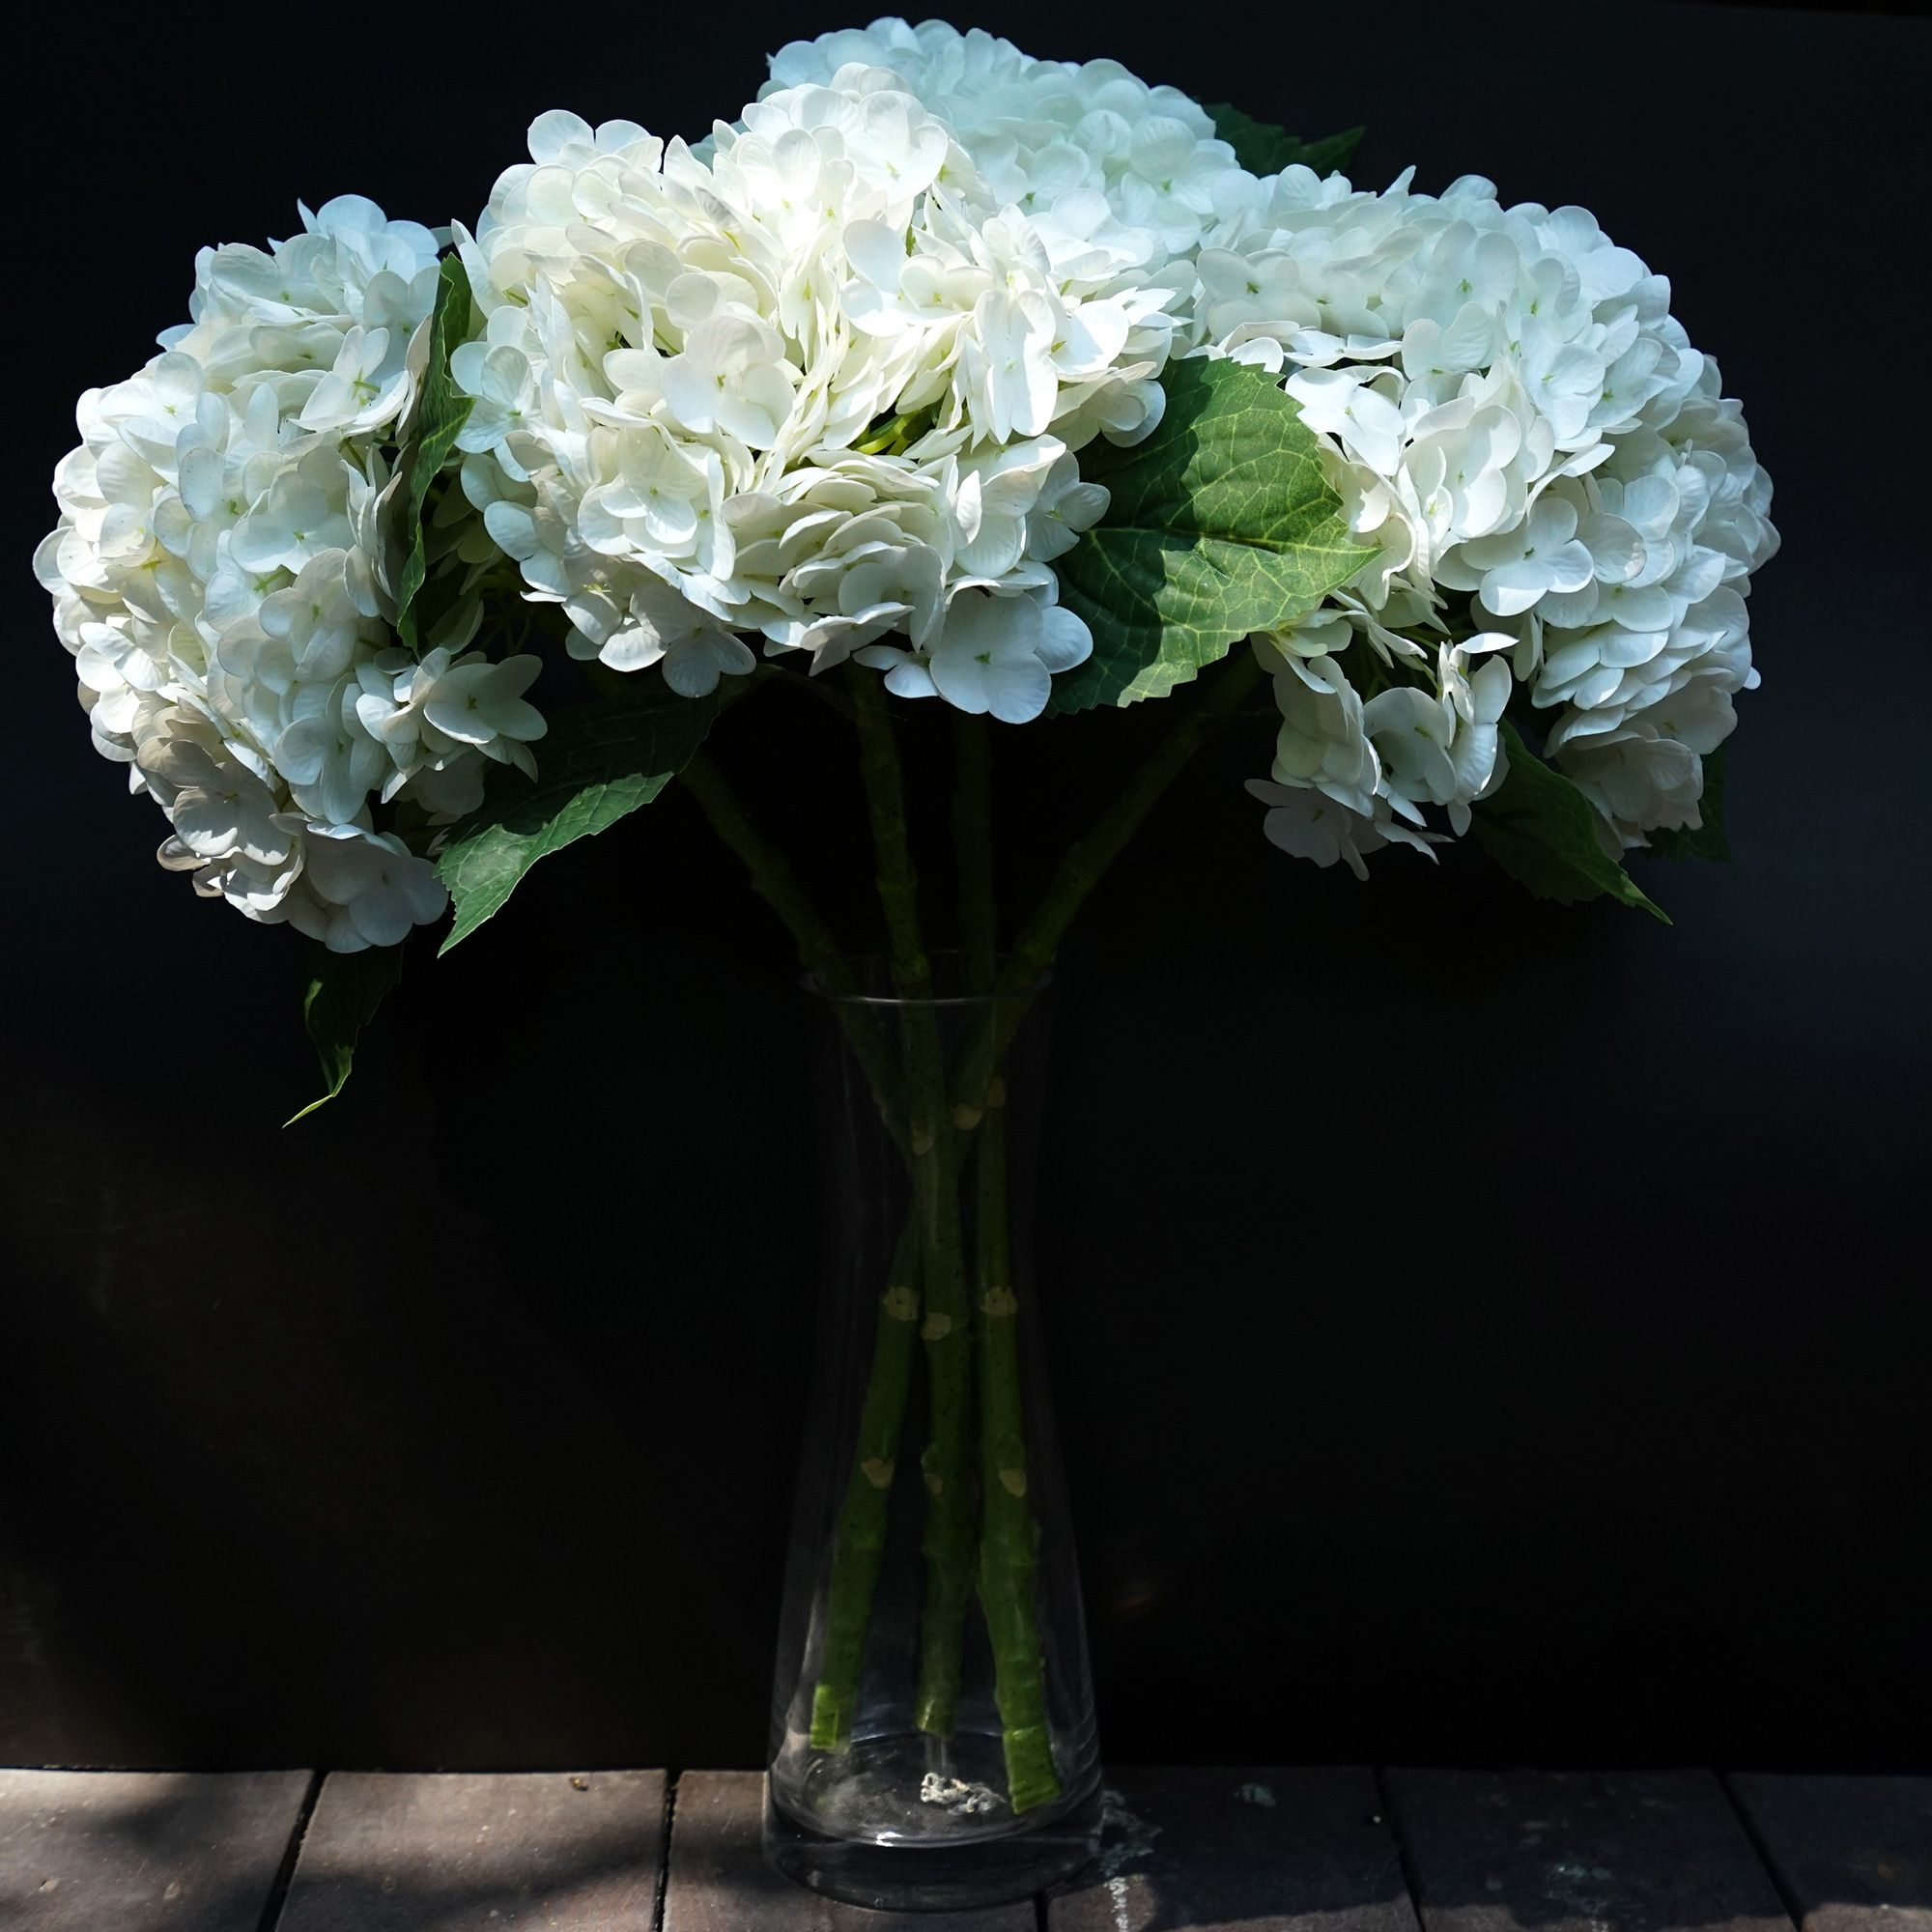 Fiveseasonstuff 2 Stems Real Touch Petals And Leaves Artificial Hydrangea Flowers Long Stem Floral Arrangement For Wedding Bridal Party Home Decor Diy Floral In 2020 Artificial Hydrangea Flowers Hydrangea Flower Artificial Hydrangeas